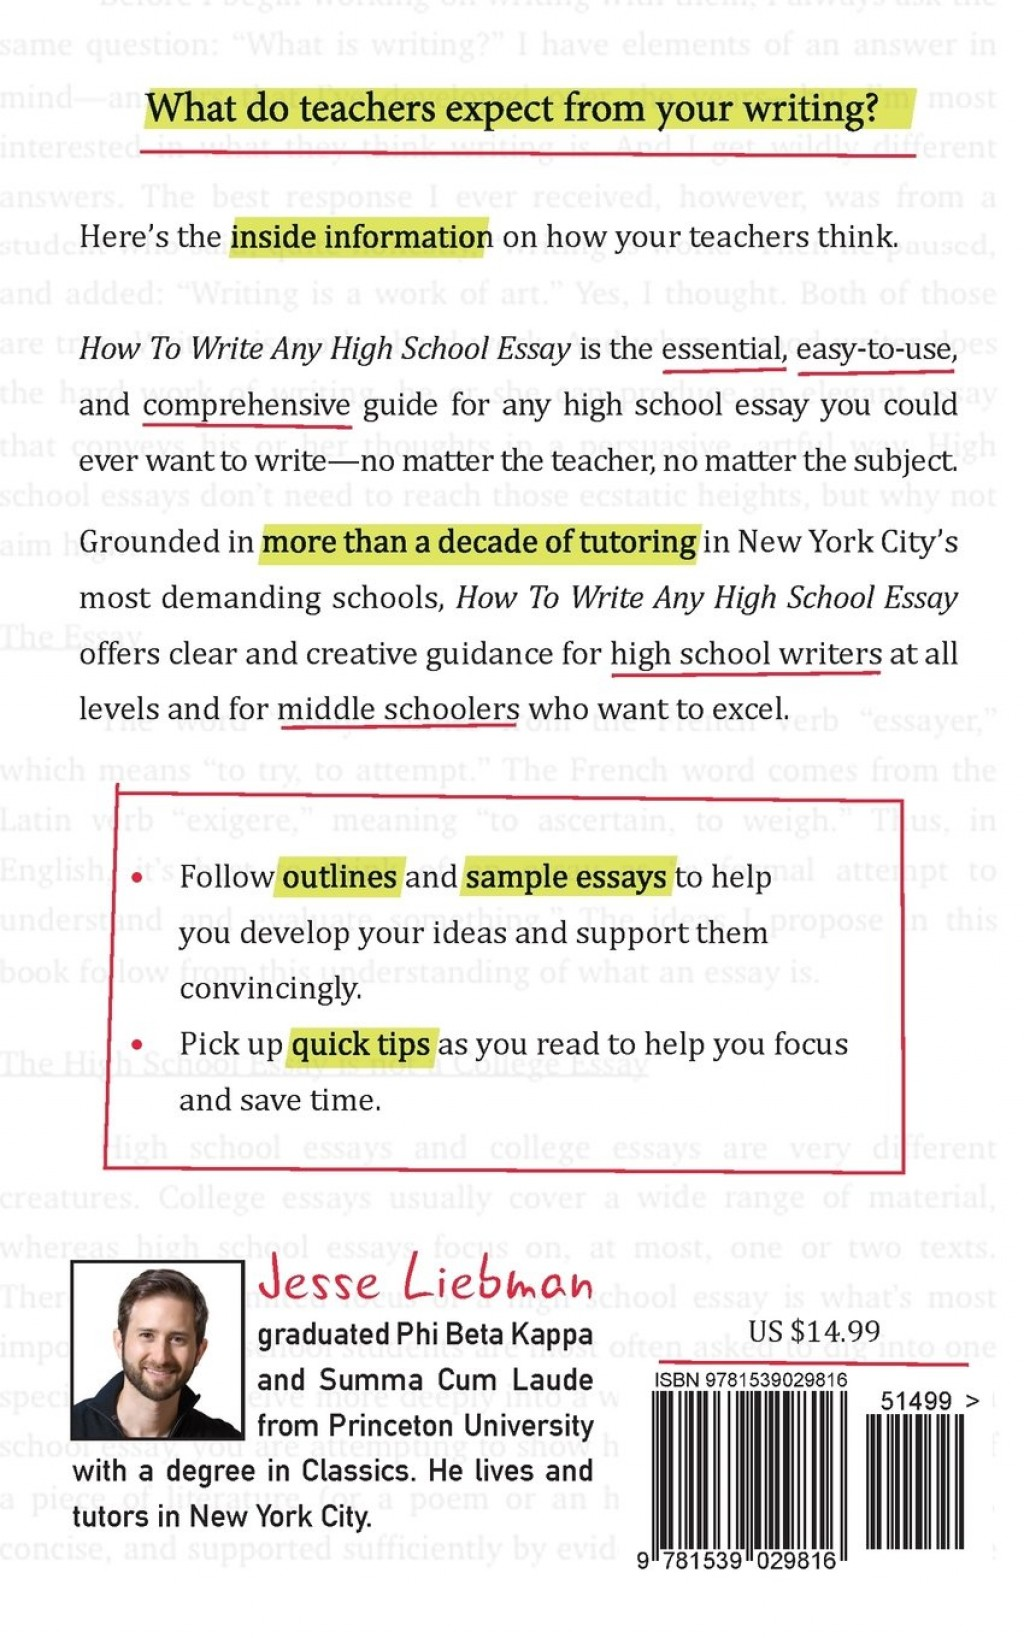 020 High School Essay 71baet3vxyl Amazing Examples Applications Informative Outline Writing Prompts Persuasive Large